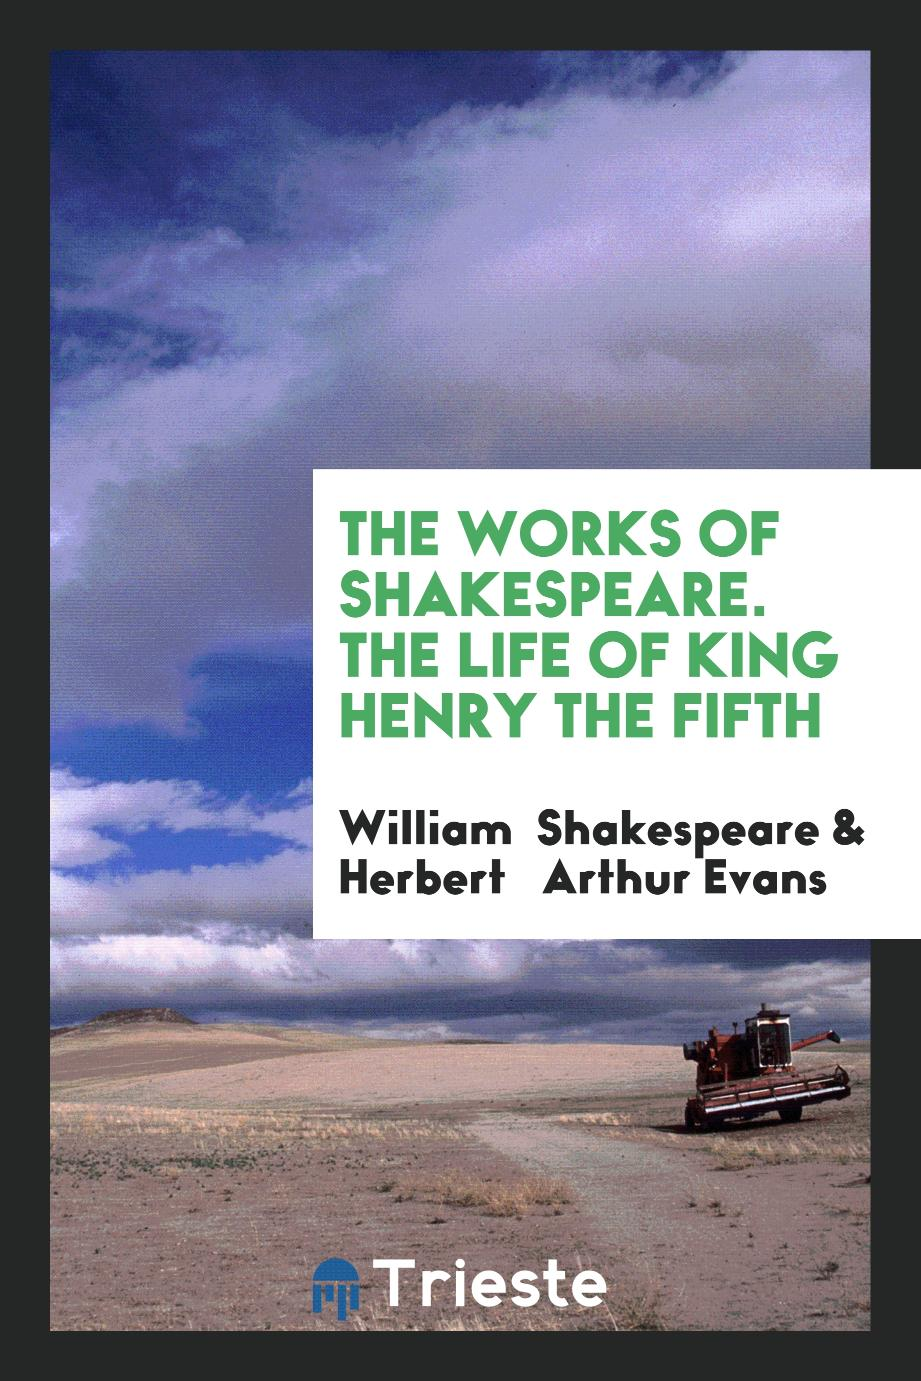 The Works of Shakespeare. The Life of King Henry the Fifth